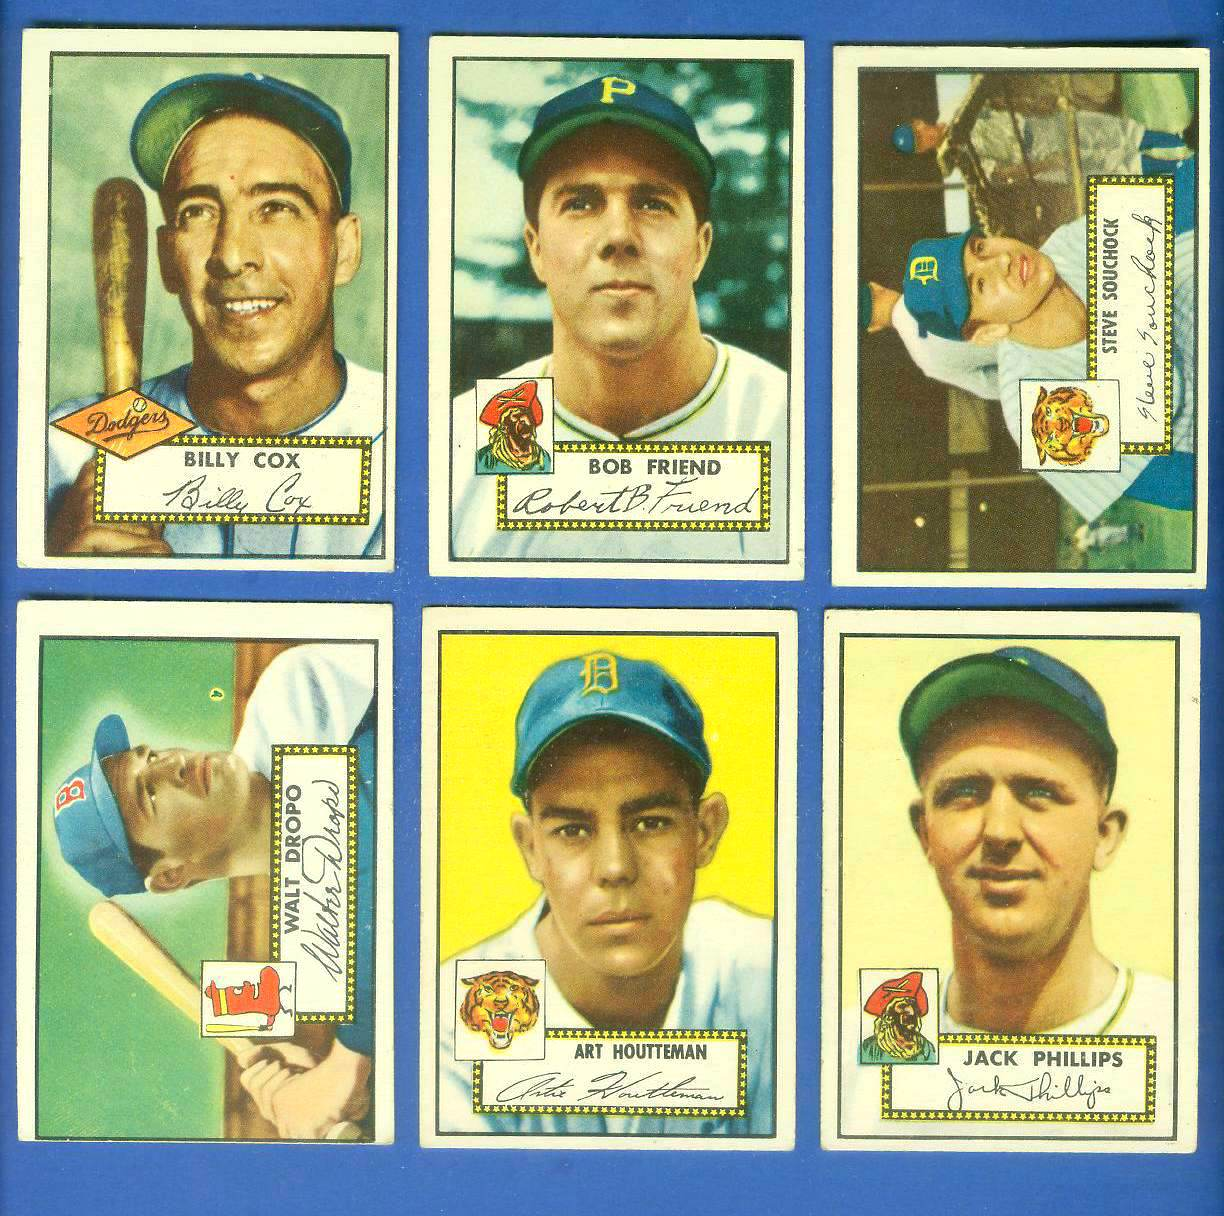 1952 Topps #232 Billy Cox (Brooklyn Dodgers) Baseball cards value